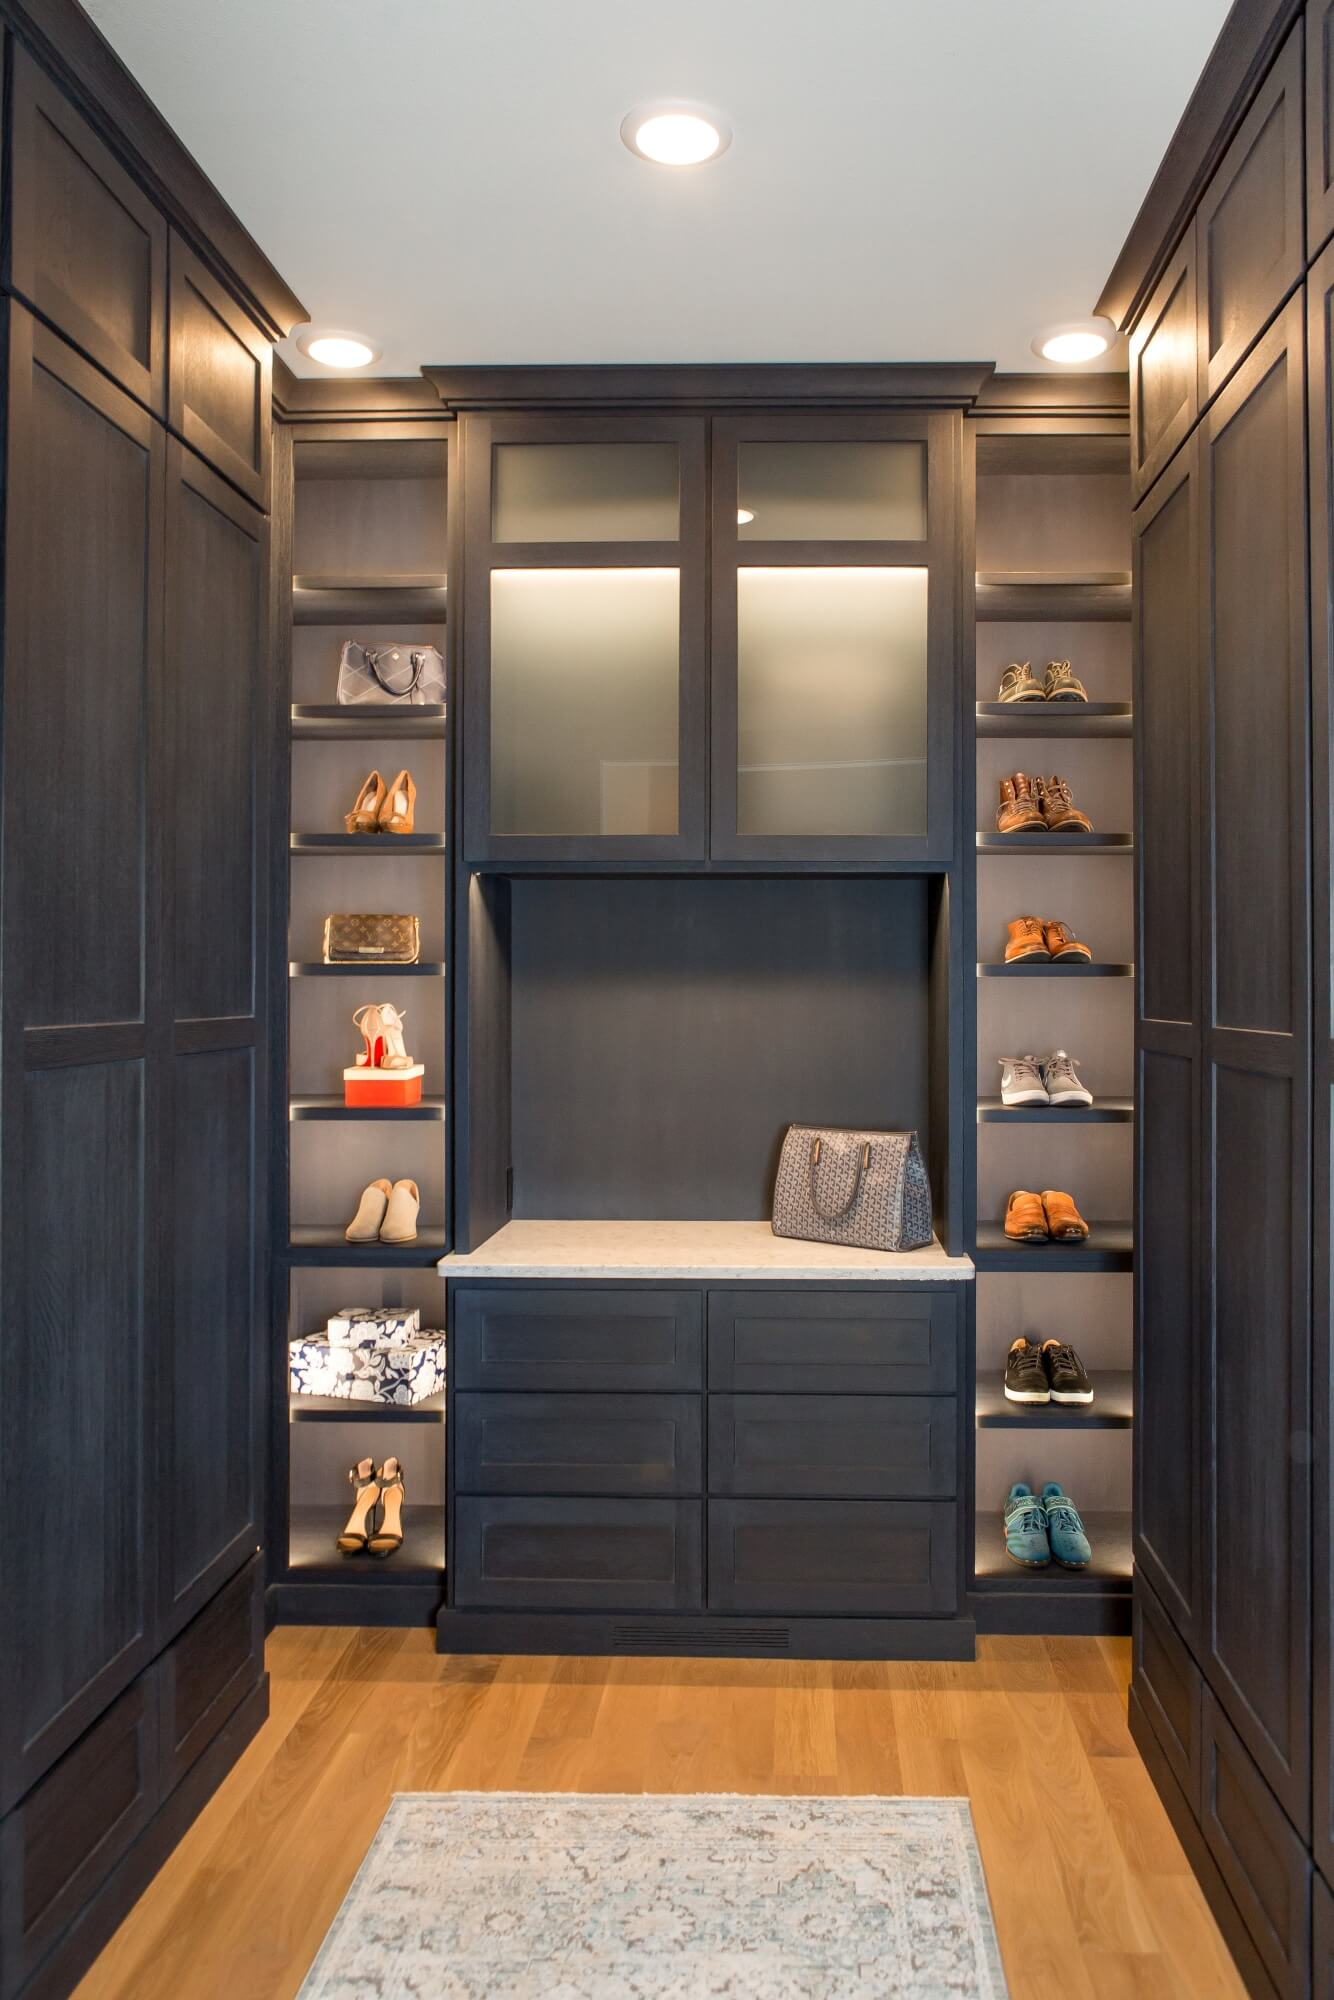 Luxury closet with shoe shelving, dark cabinetry and oak wood flooring.